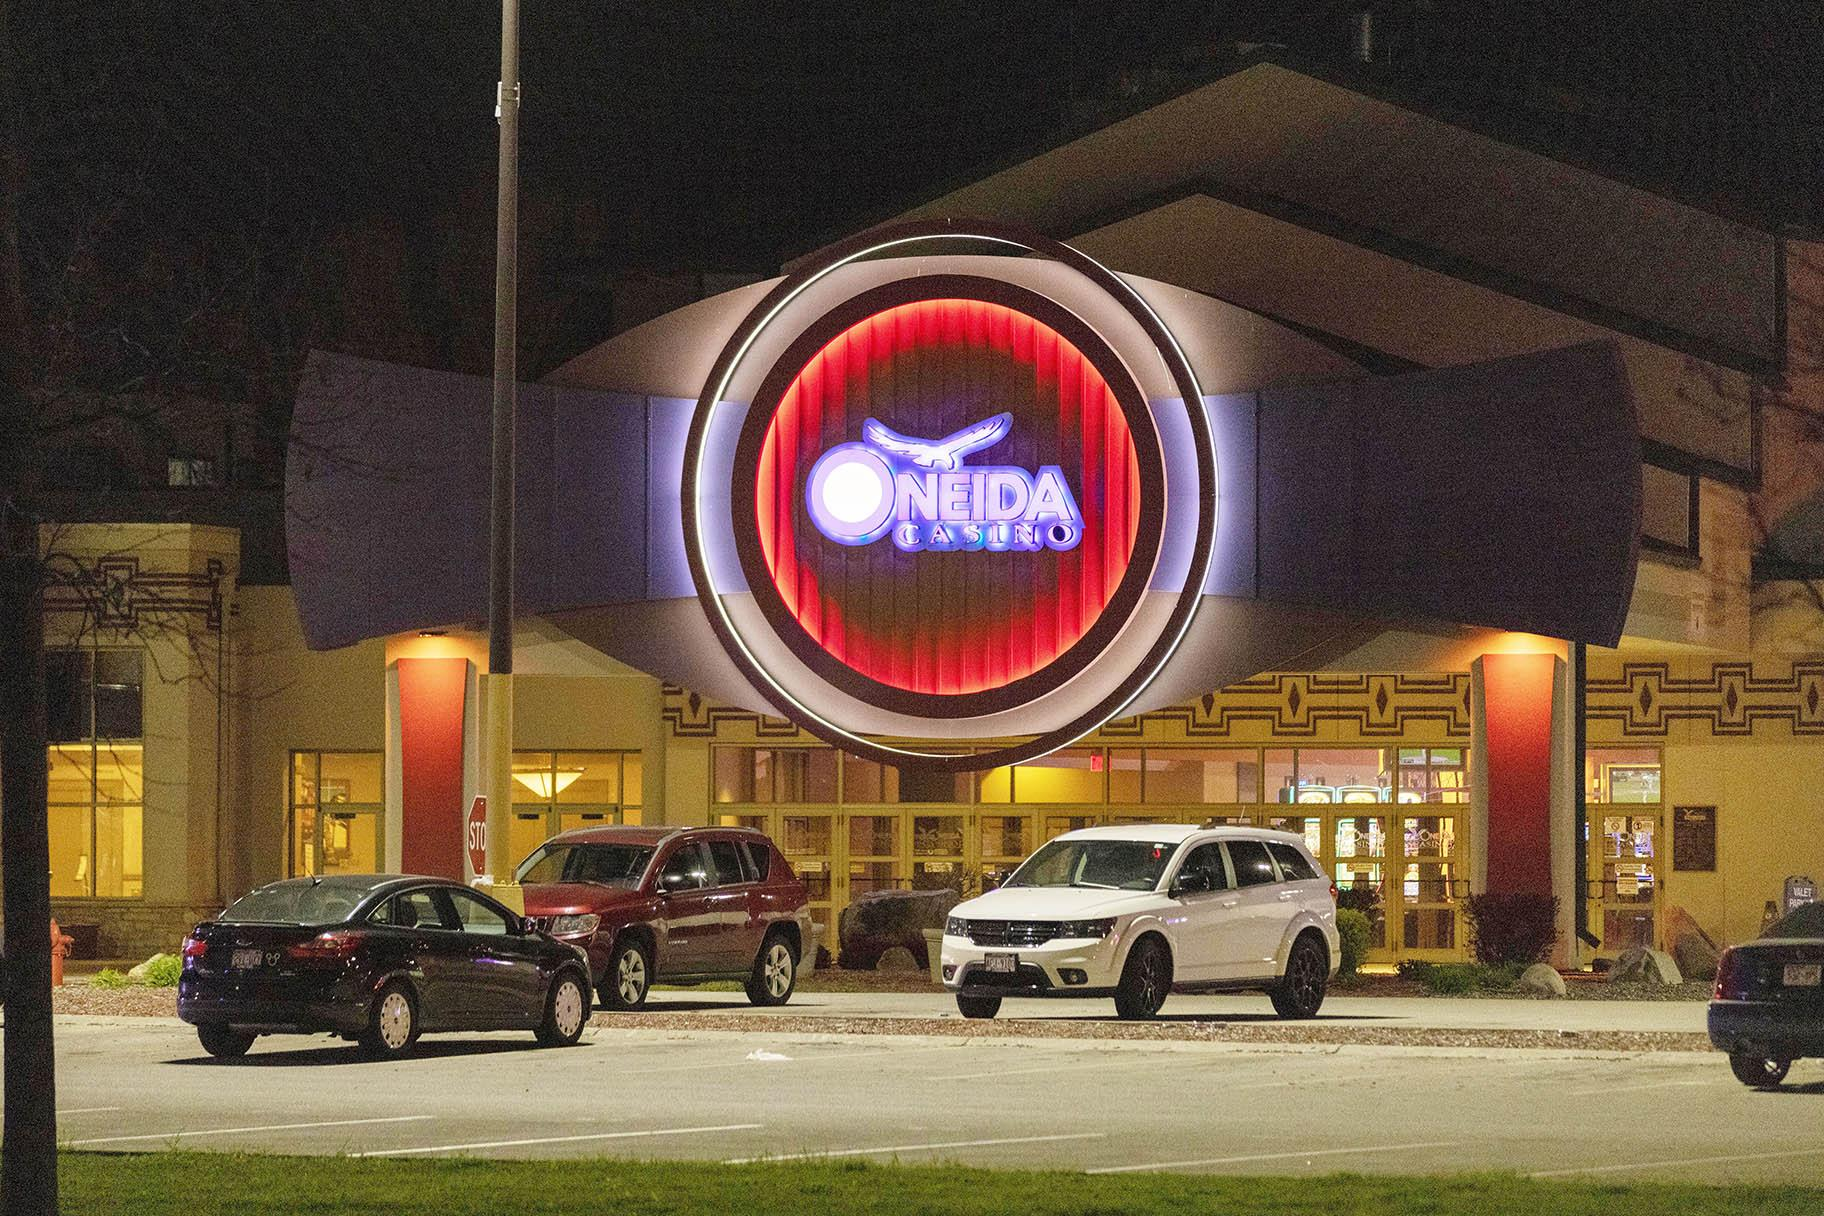 The Oneida Casino lights glow in the parking lot in the early morning hours of Sunday, May 2nd, 2021, near Green Bay, Wisconsin. (AP Photo / Mike Roemer)